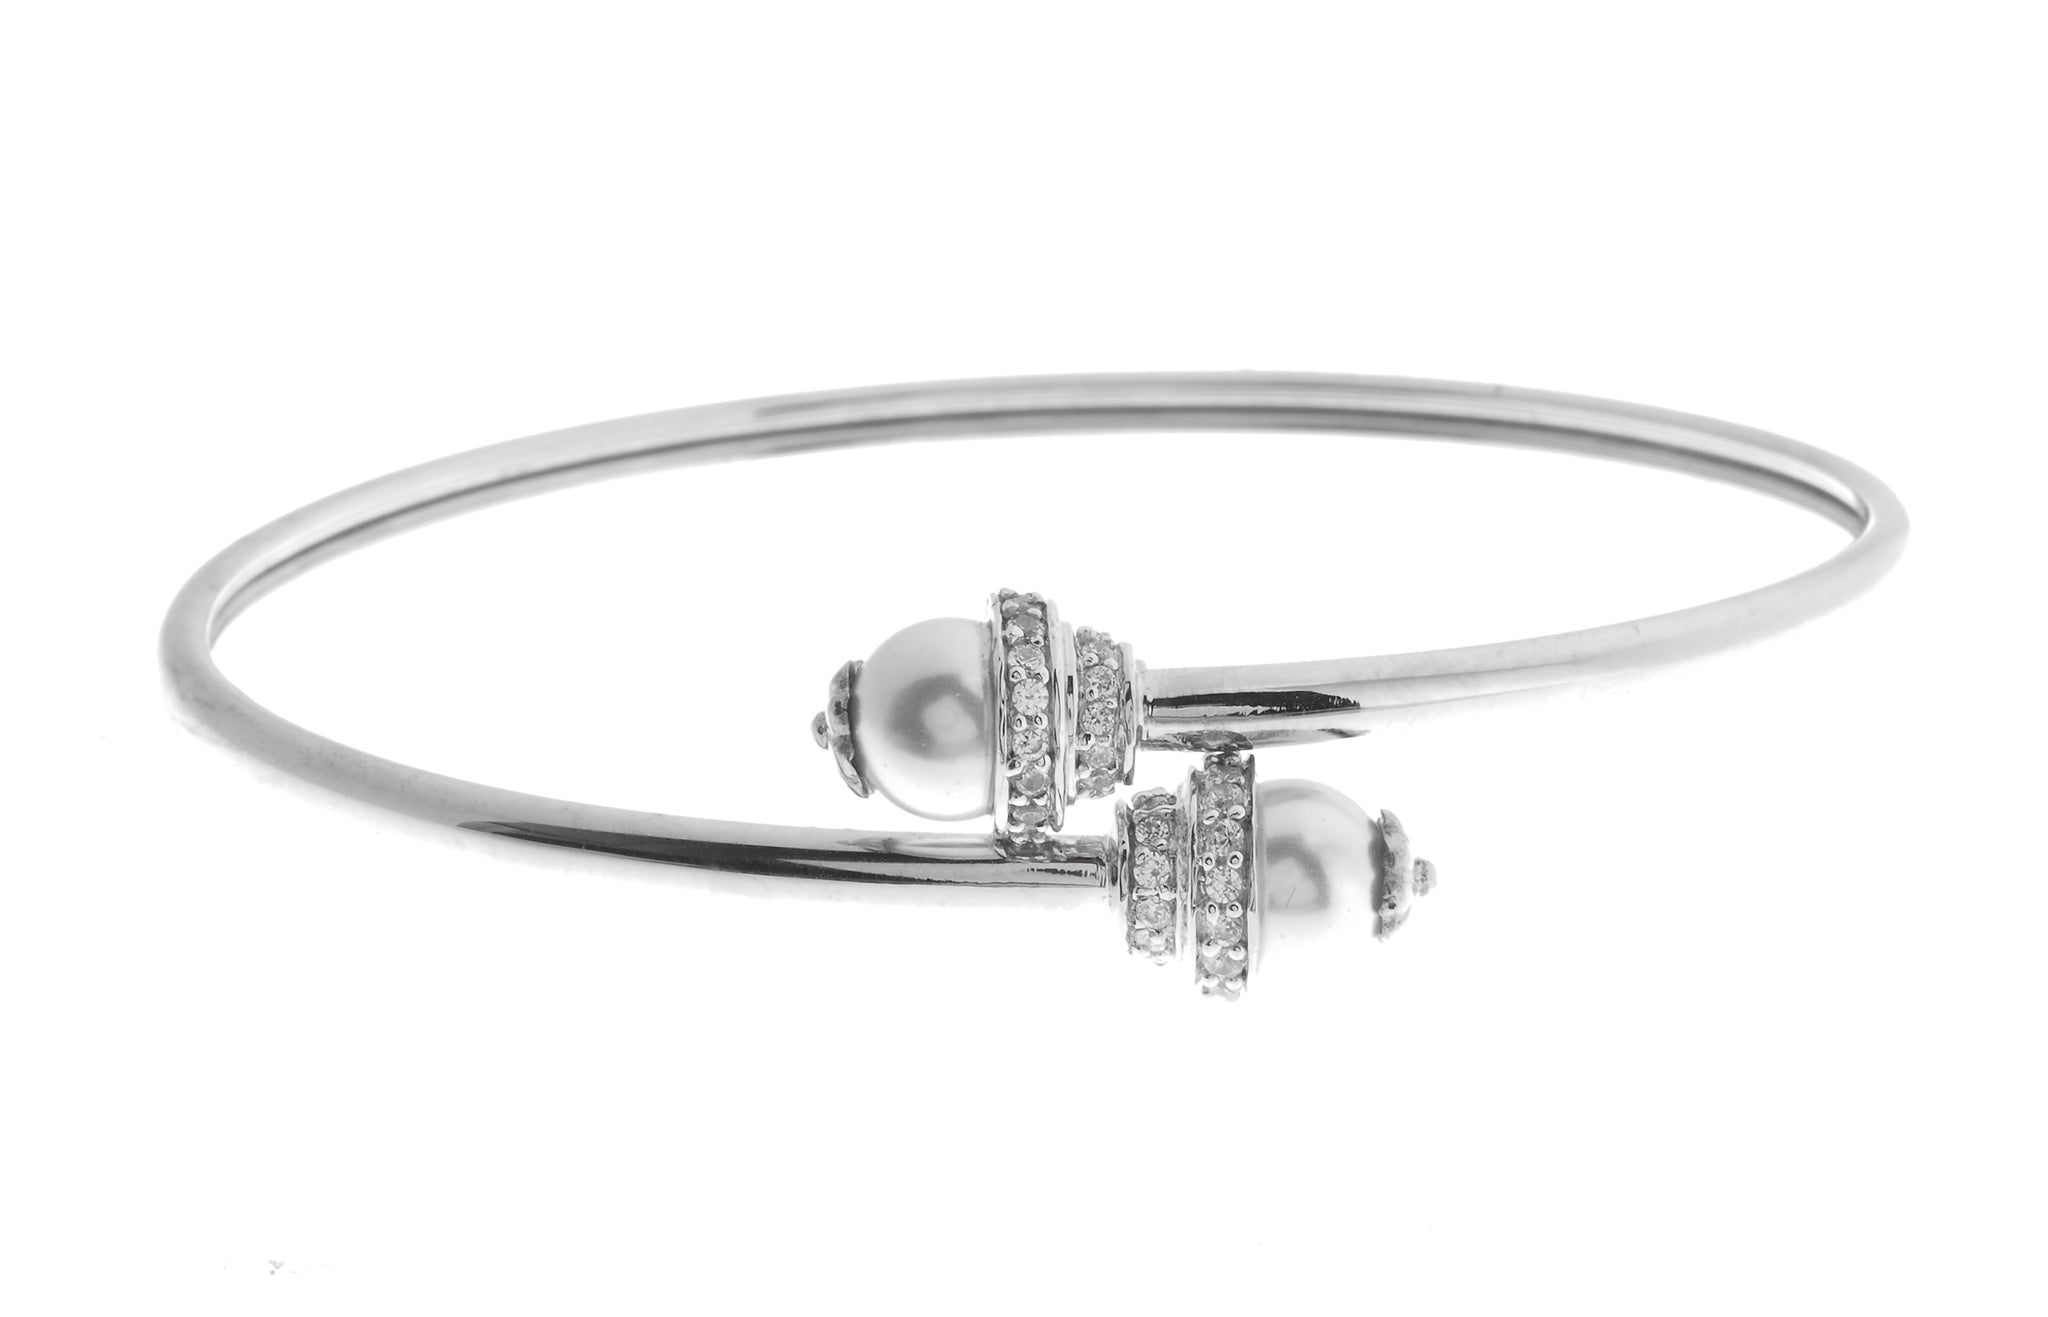 18ct White Gold Bangle with Cubic Zirconia Stones (10.71g) LKB9005